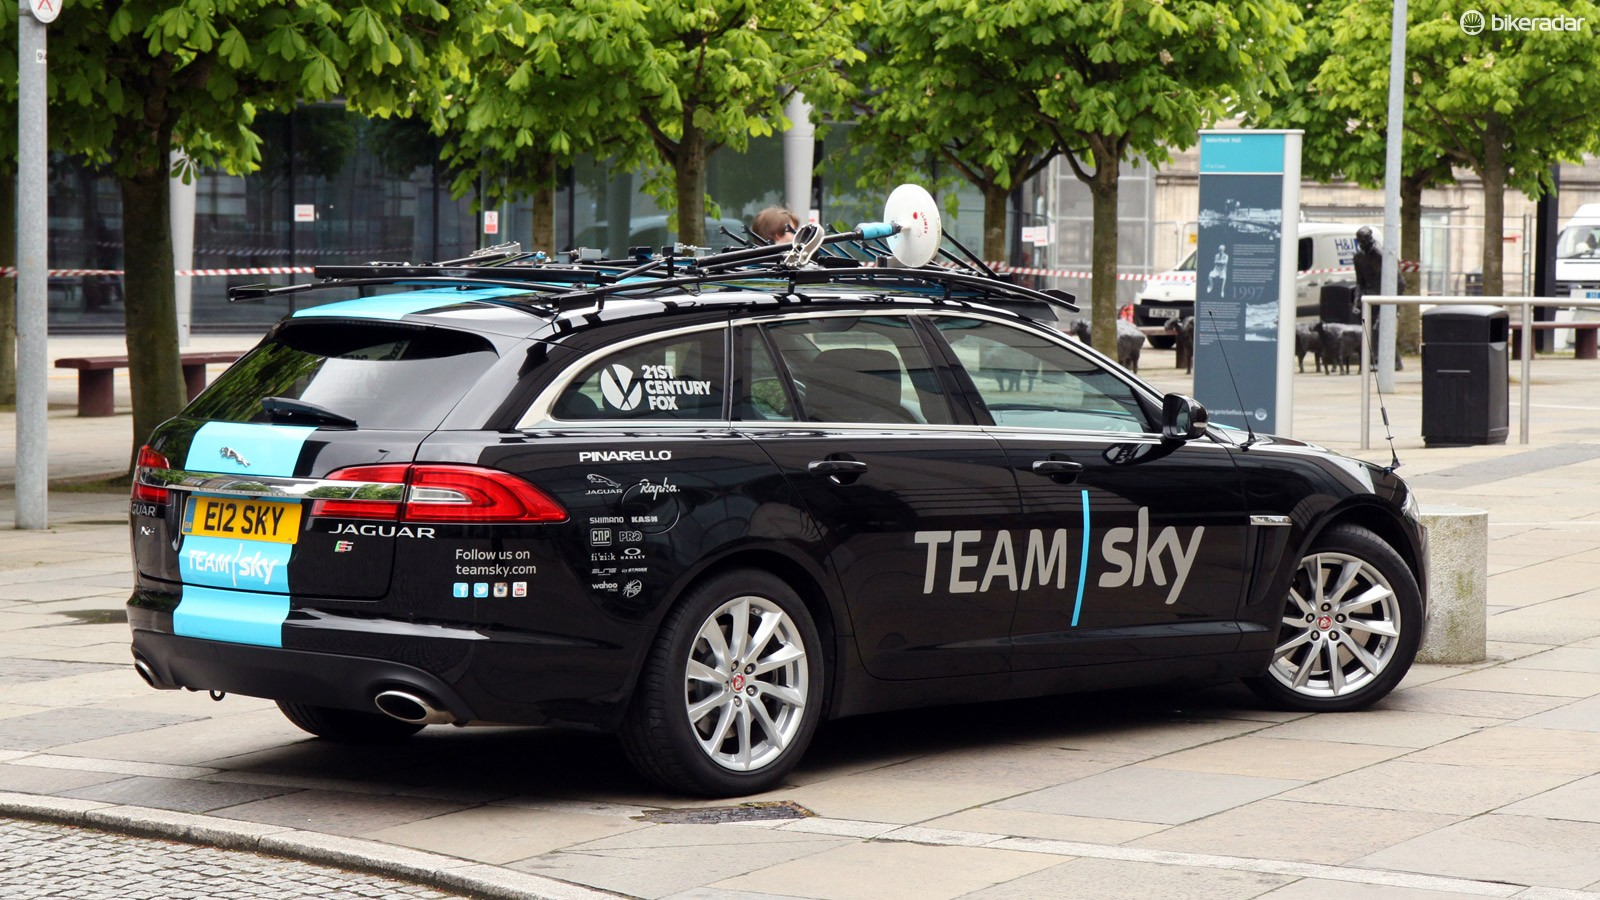 Team Sky has perhaps the snazziest cars in the peloton. These Jaguar XF Sportbrakes unfortunately aren't available in the US, but that's not an issue in Europe